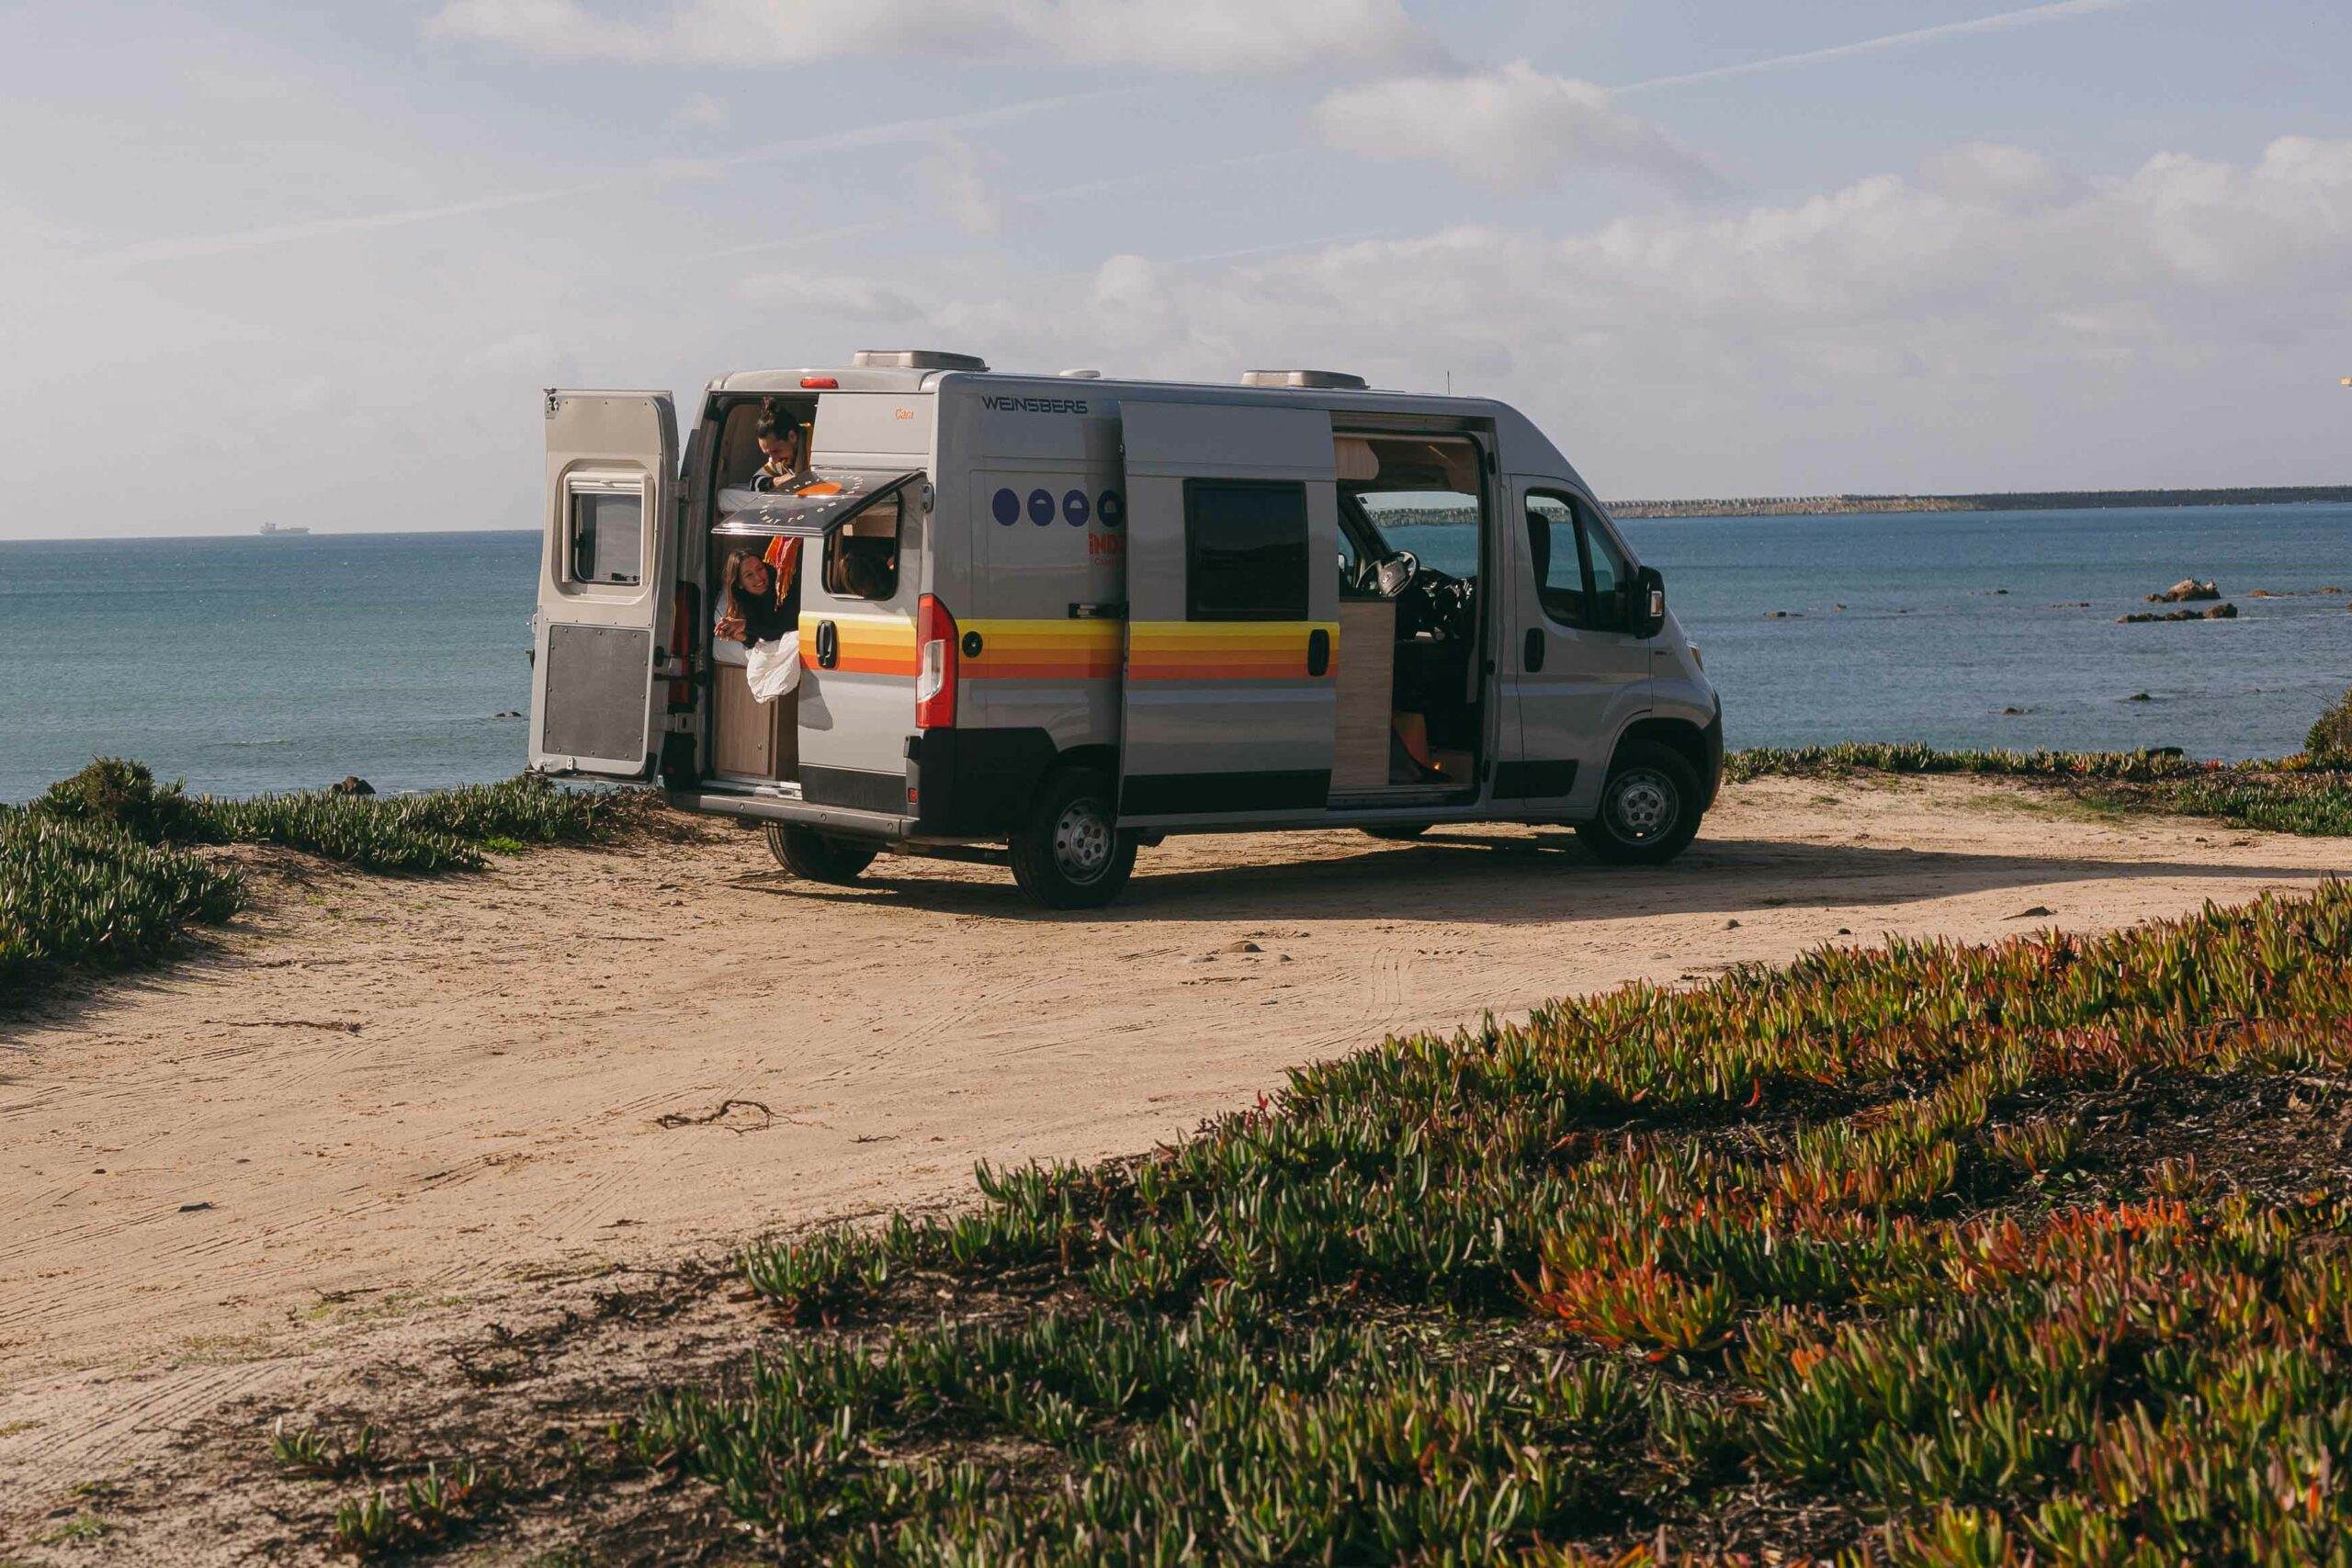 Campervan Storage: Loading your motorhome, it's more than just a giant game of Tetris.